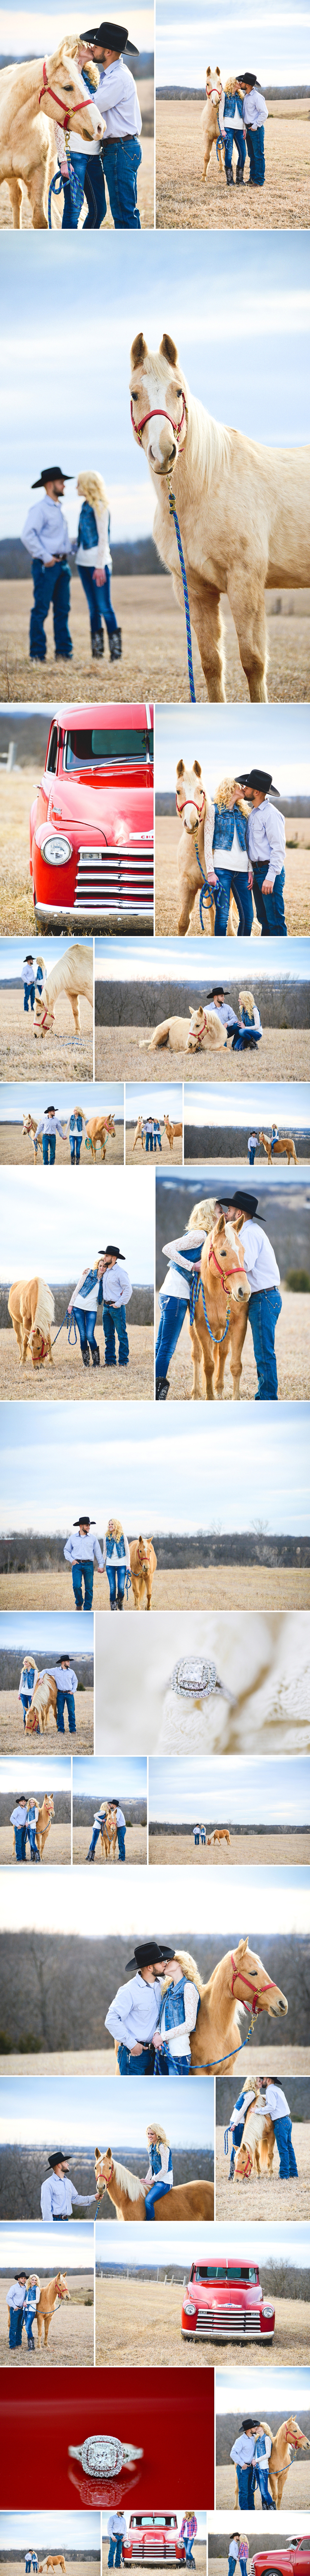 Country Engagement Pictures, horses in engagement pictures, cowboy and cowgirl, what to wear to your country engagement shoot, 1950's chevy truck, rustic engagement picture ideas, engaged, farm, palominos in your pictures, plaid and cowboy hat, lace, western photo shoot, inspiration for country engagement